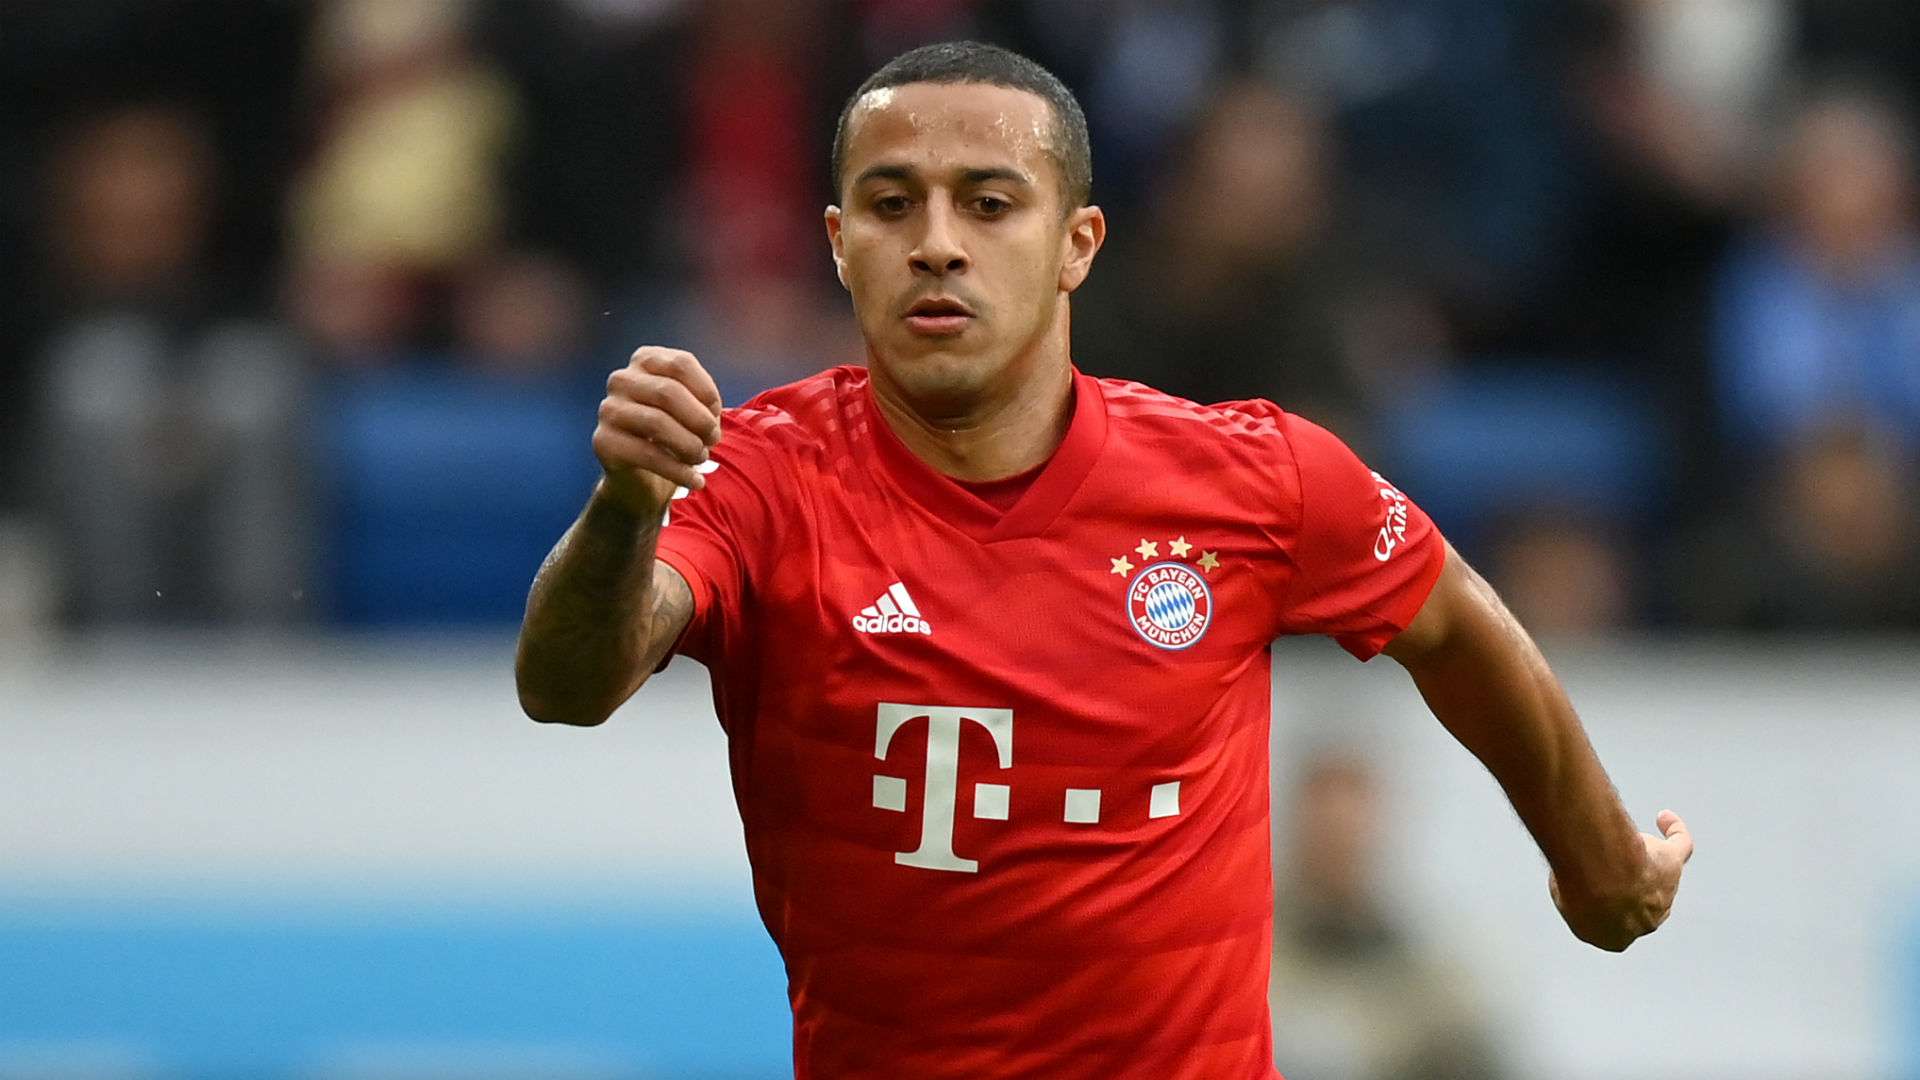 Flick 'totally understands' why Thiago may want Premier League move